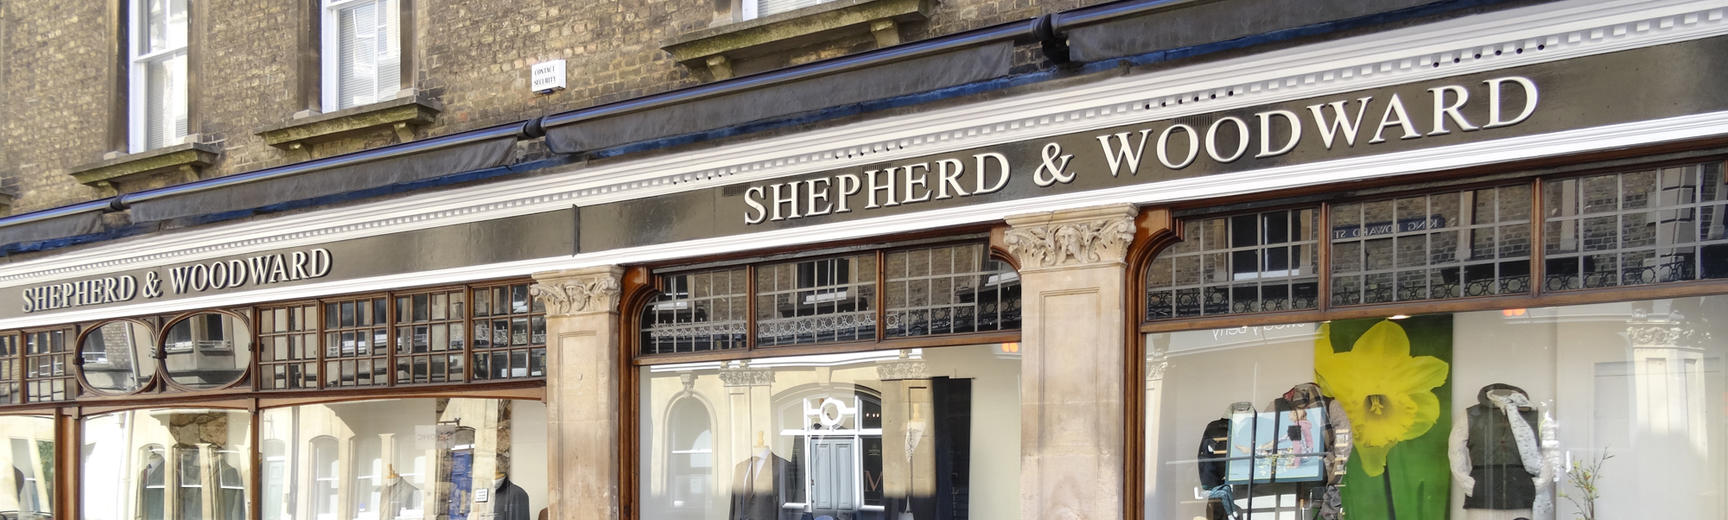 The exterior of the Shepherd and Woodward shop on King Edward's Street